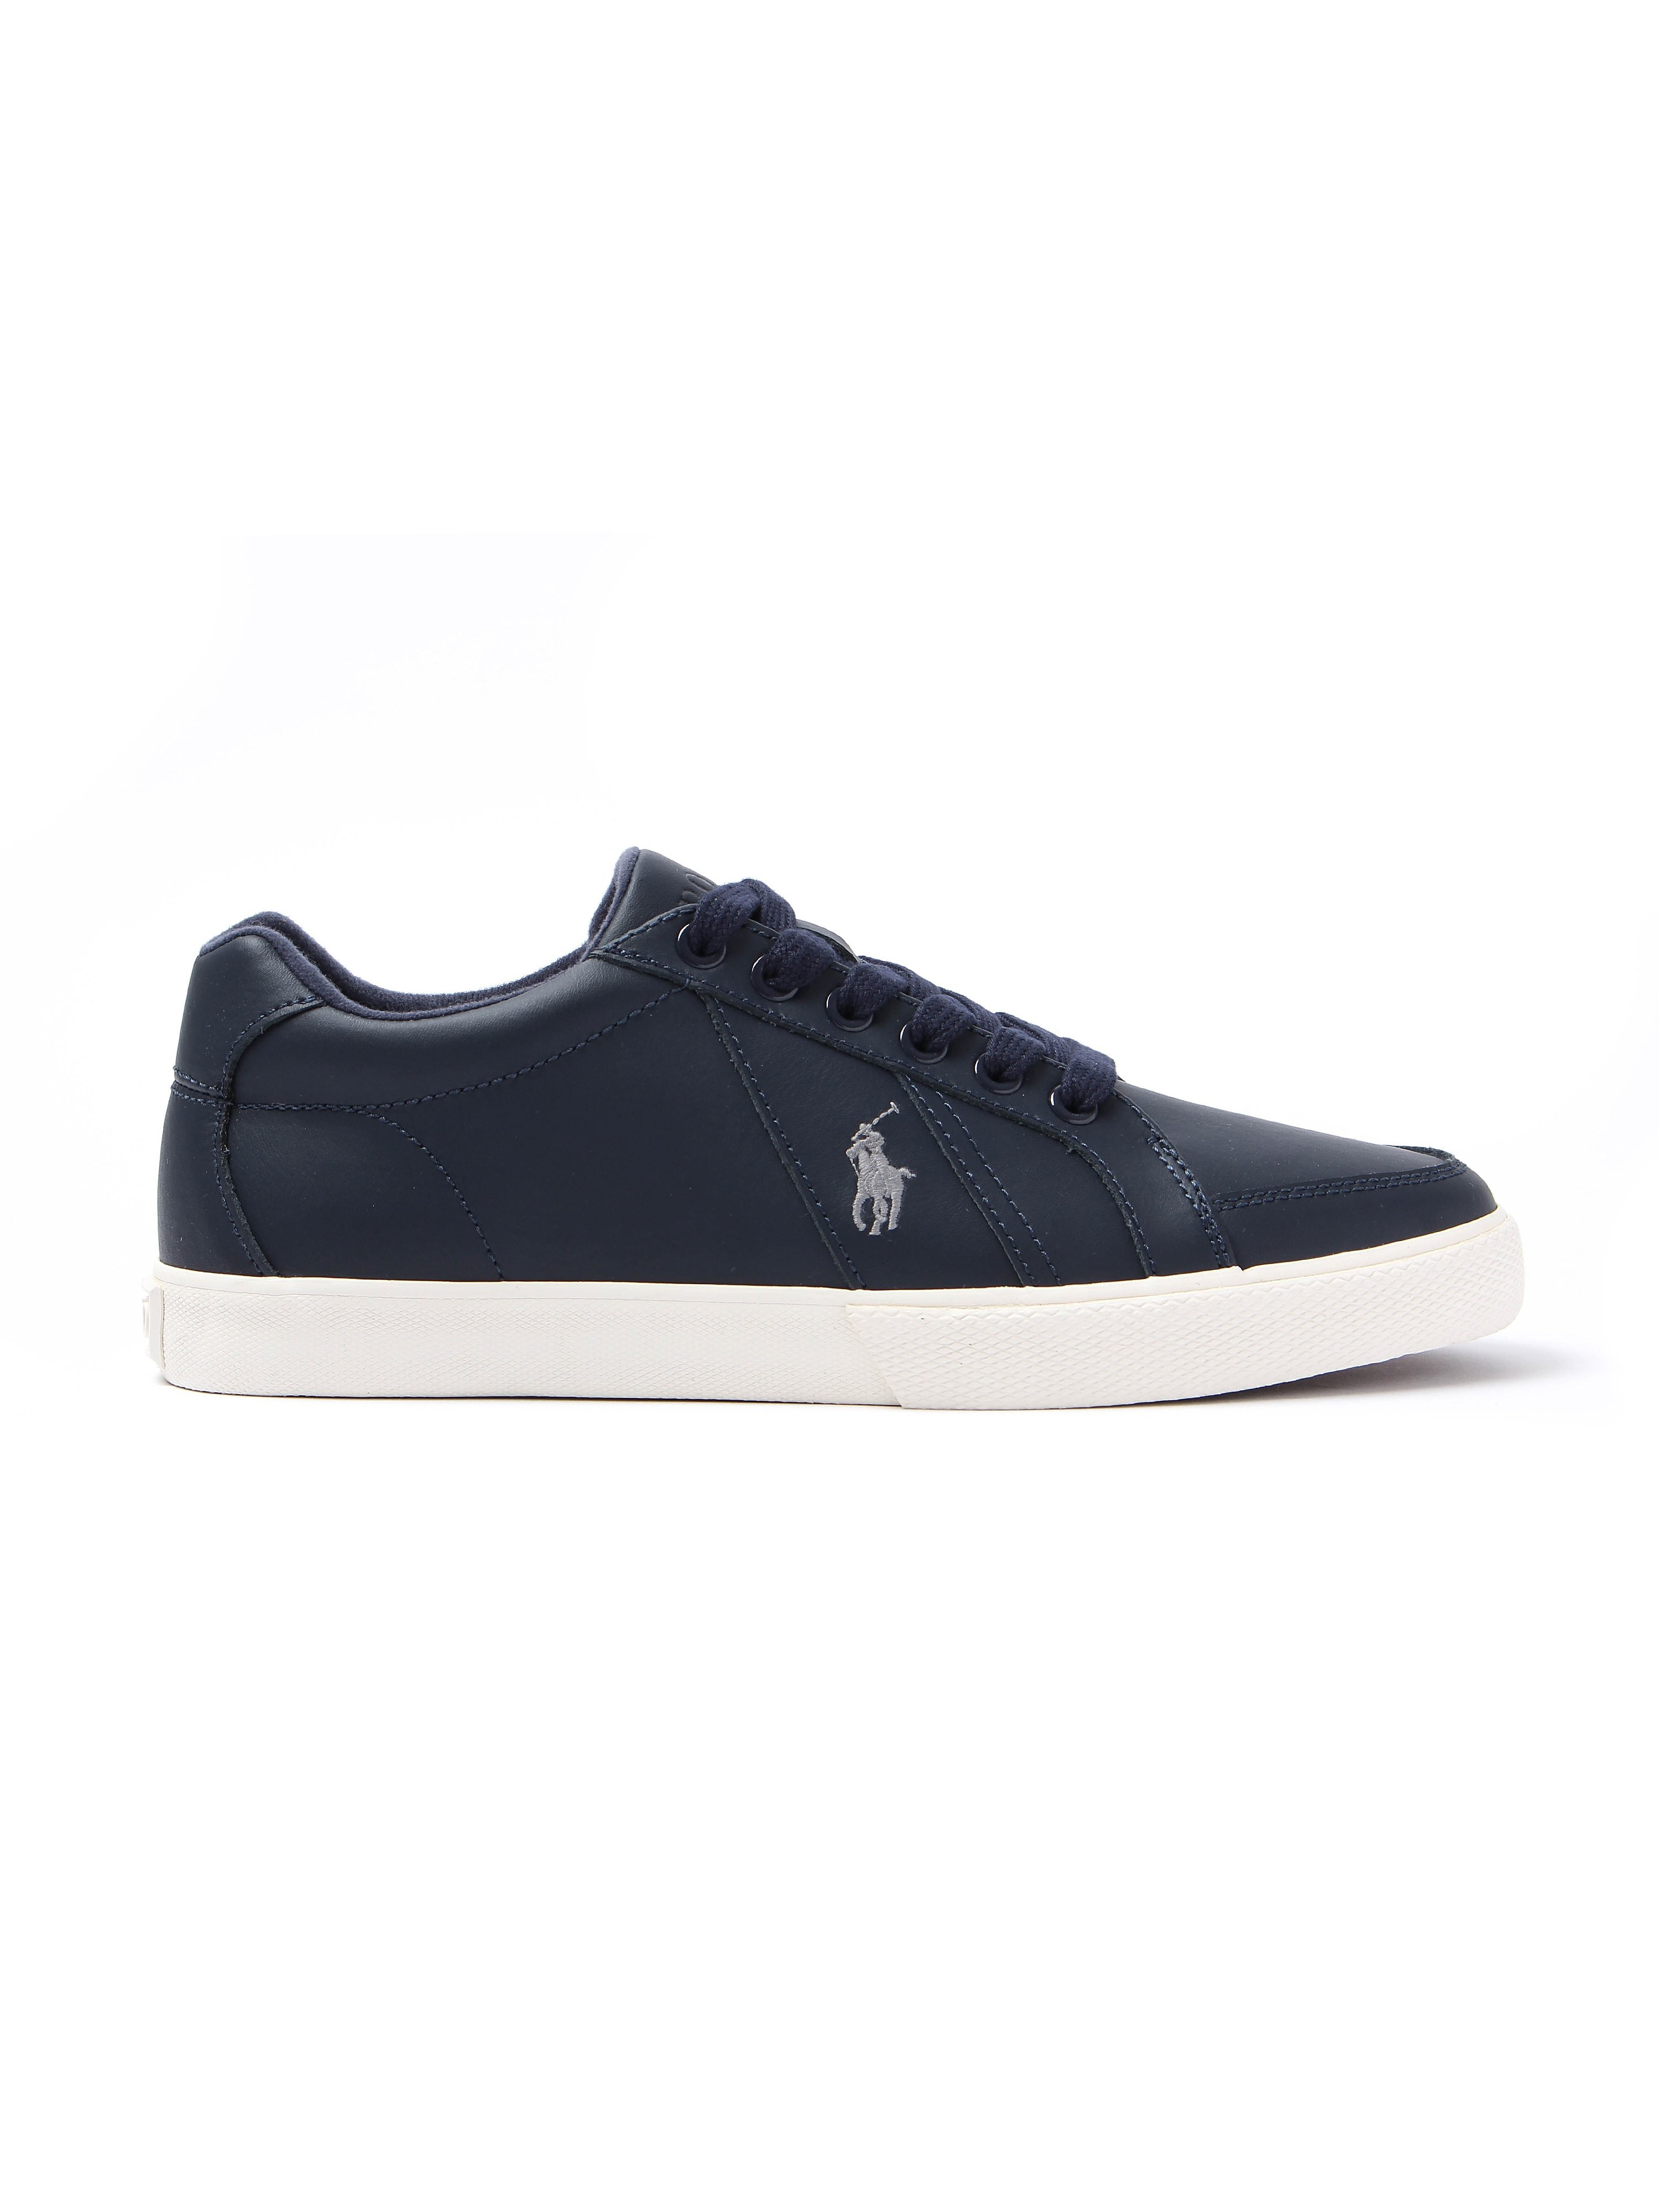 Polo Ralph Lauren Hugh - Newport